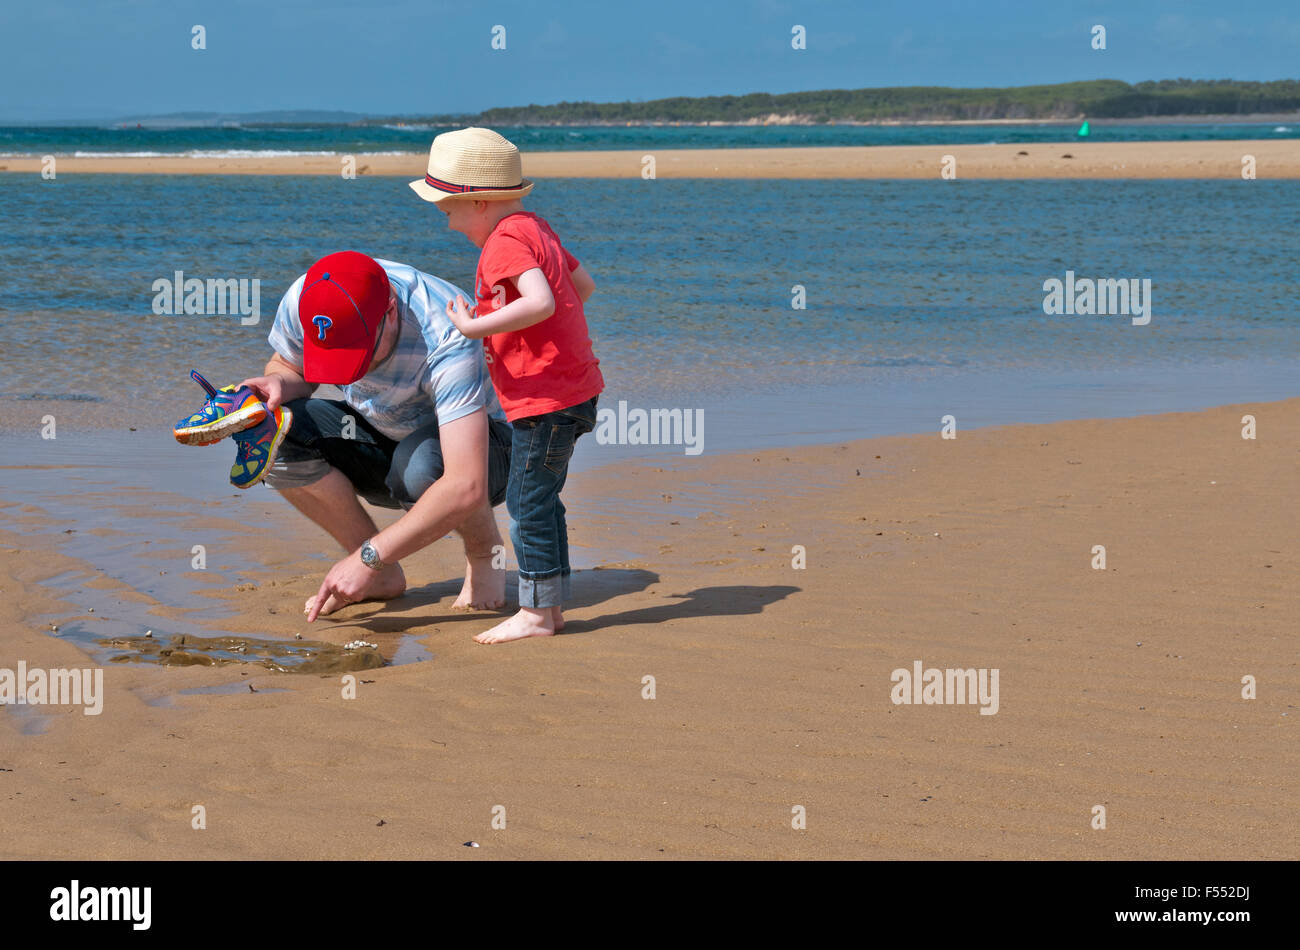 Searching for sea creatures on the beach Anderson Inlet Inverloch Victoria Australia - Stock Image